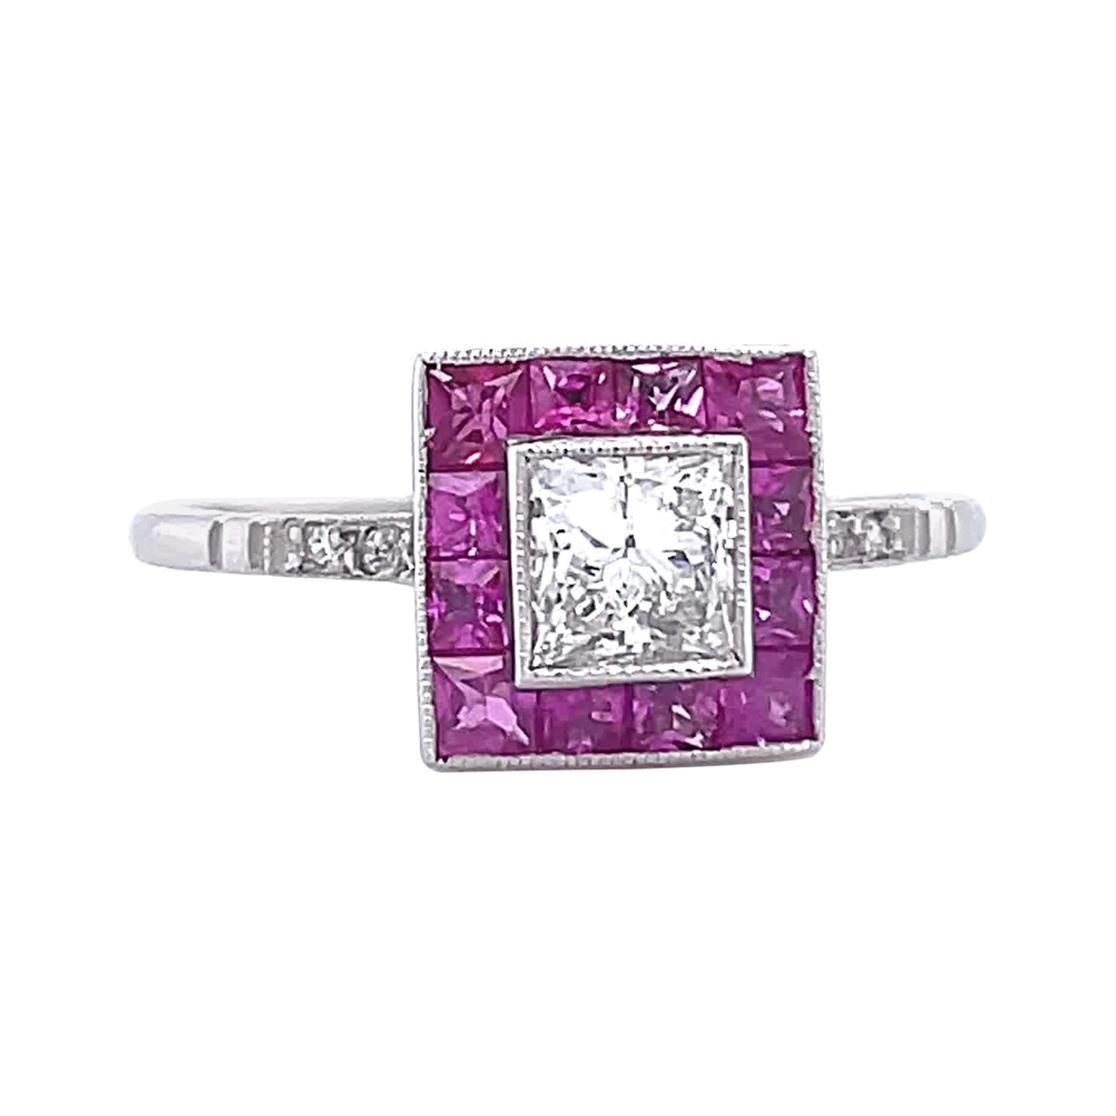 Art Deco Inspired Engagement Ring Princess Cut Diamond Ruby Ring